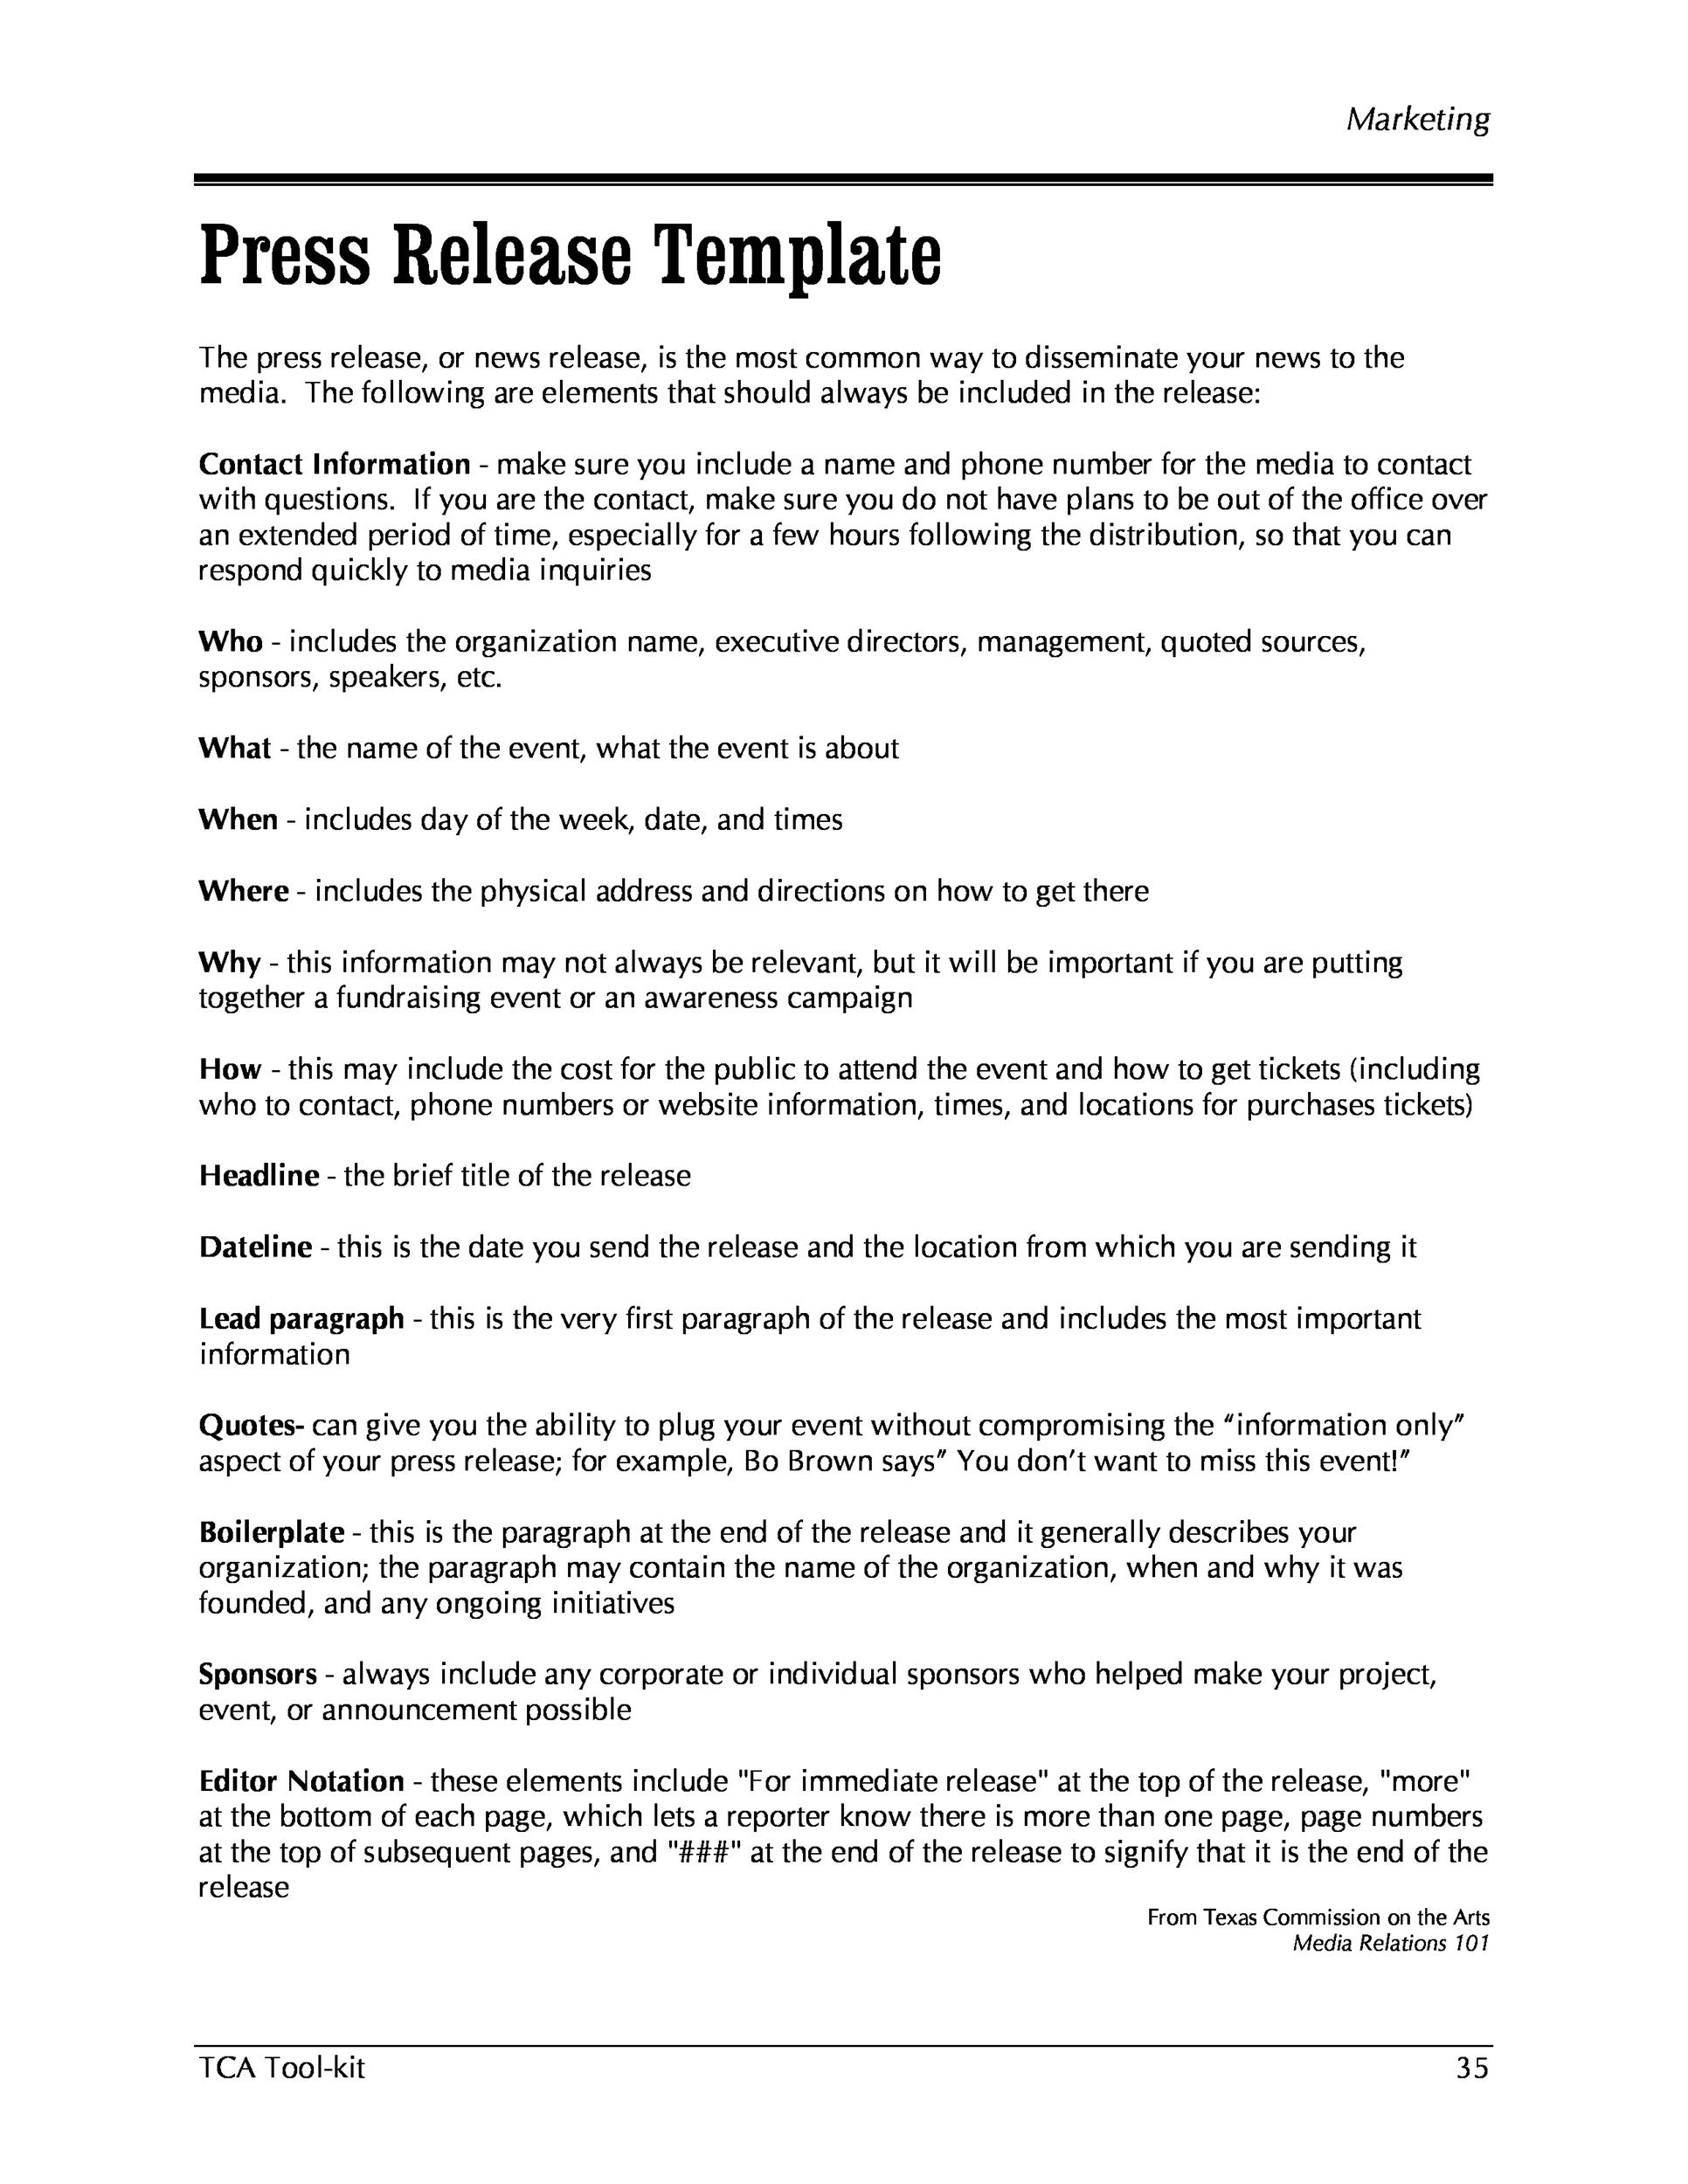 press release brief template 46 press release format templates examples samples